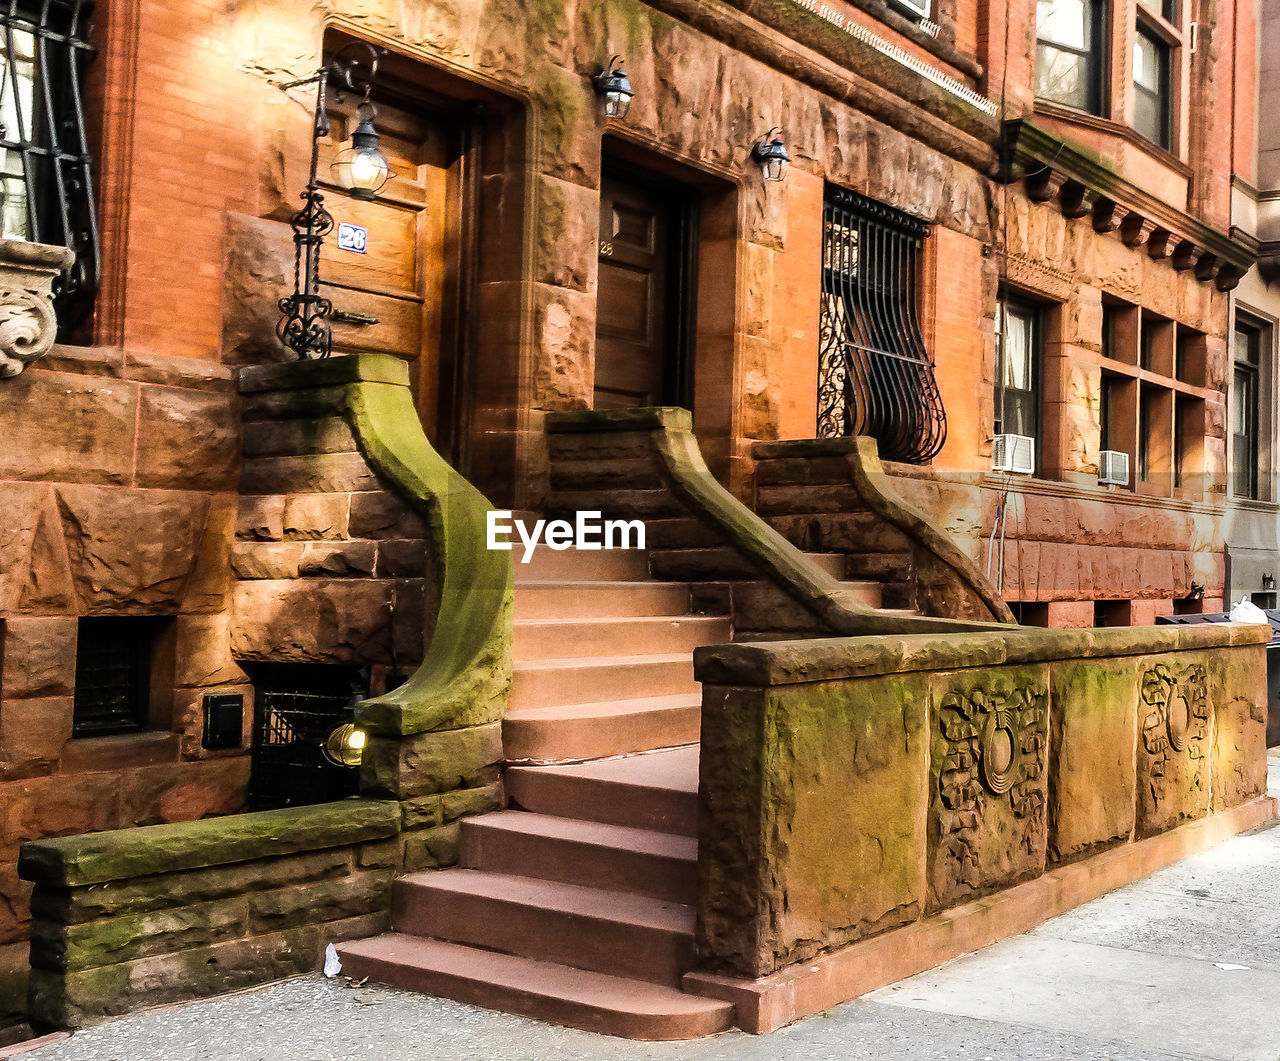 architecture, built structure, building exterior, staircase, building, steps and staircases, no people, day, railing, window, wall, outdoors, residential district, wall - building feature, city, direction, nature, sunlight, wood - material, the past, alley